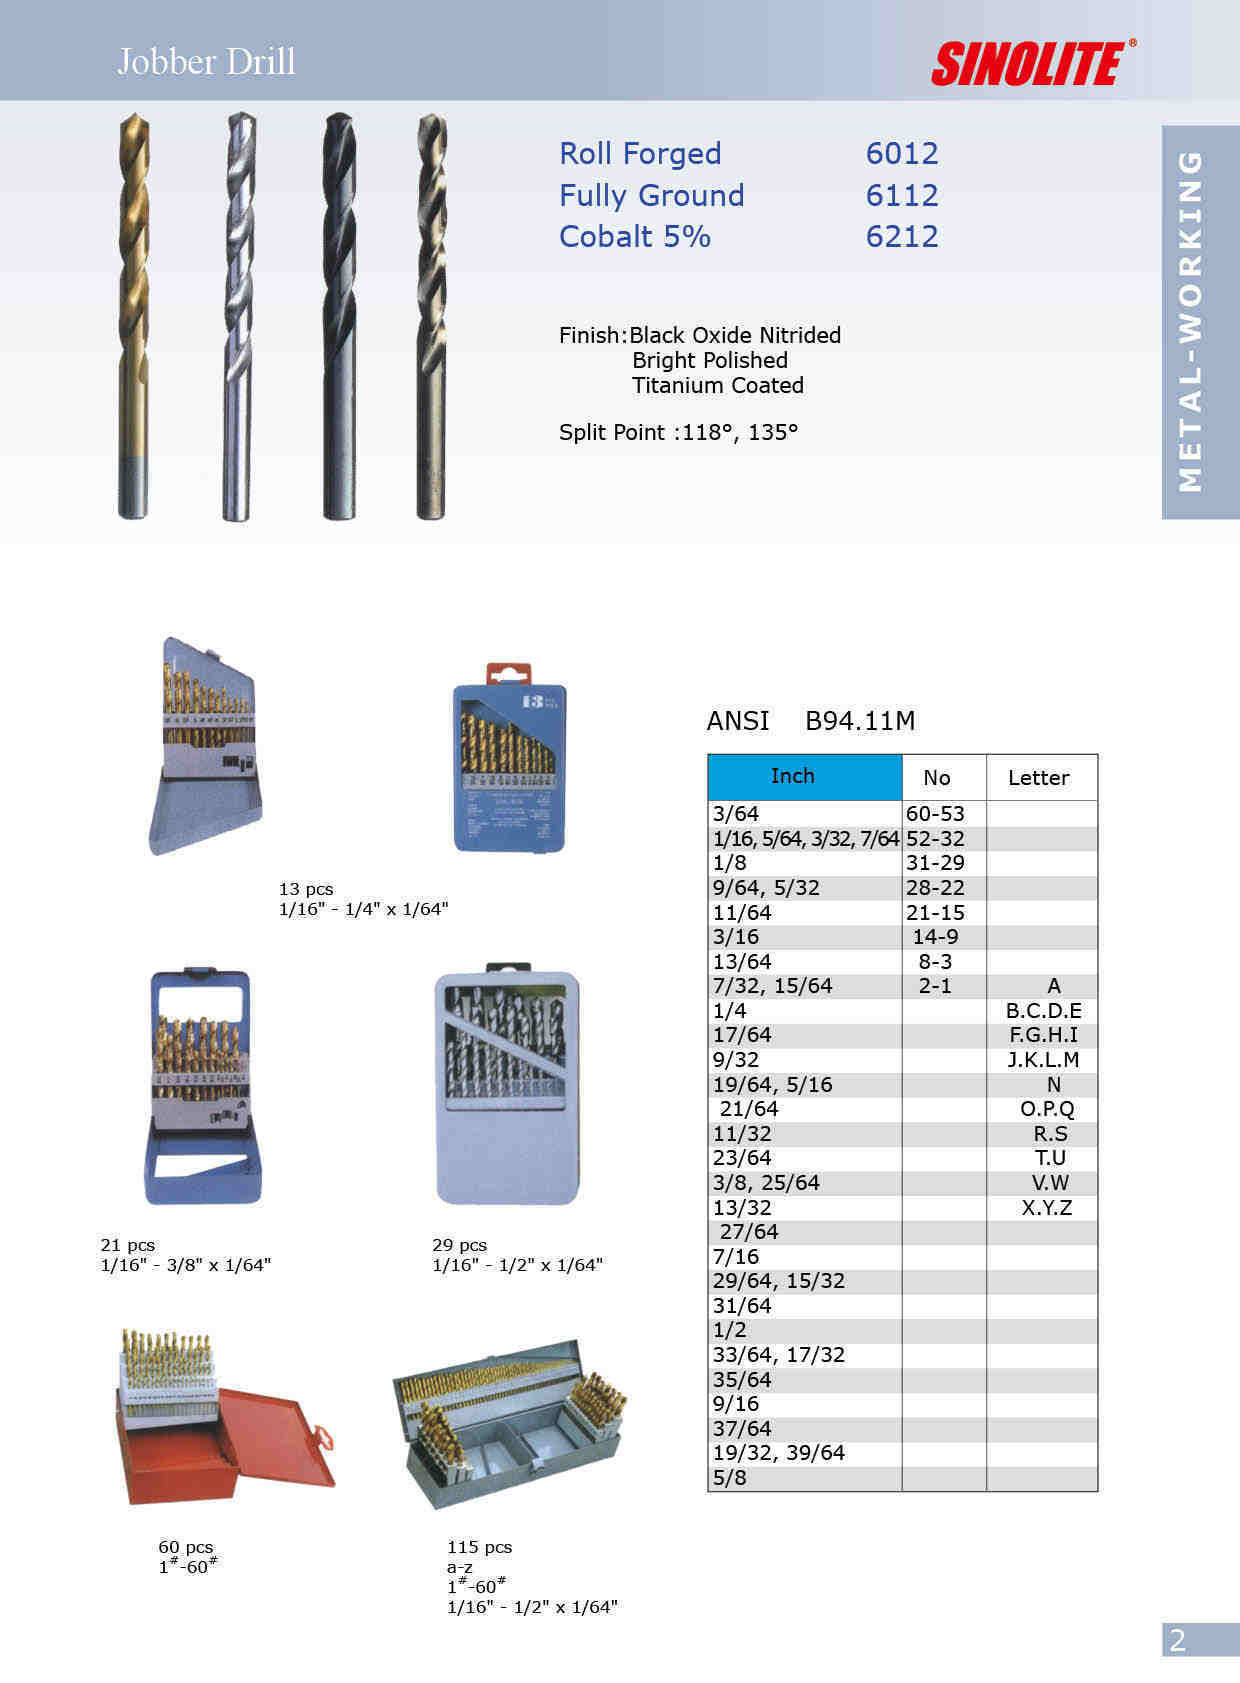 Jobber drill bits ANSI B94.11M roll forged, fully ground, HSSCO5% drill bits